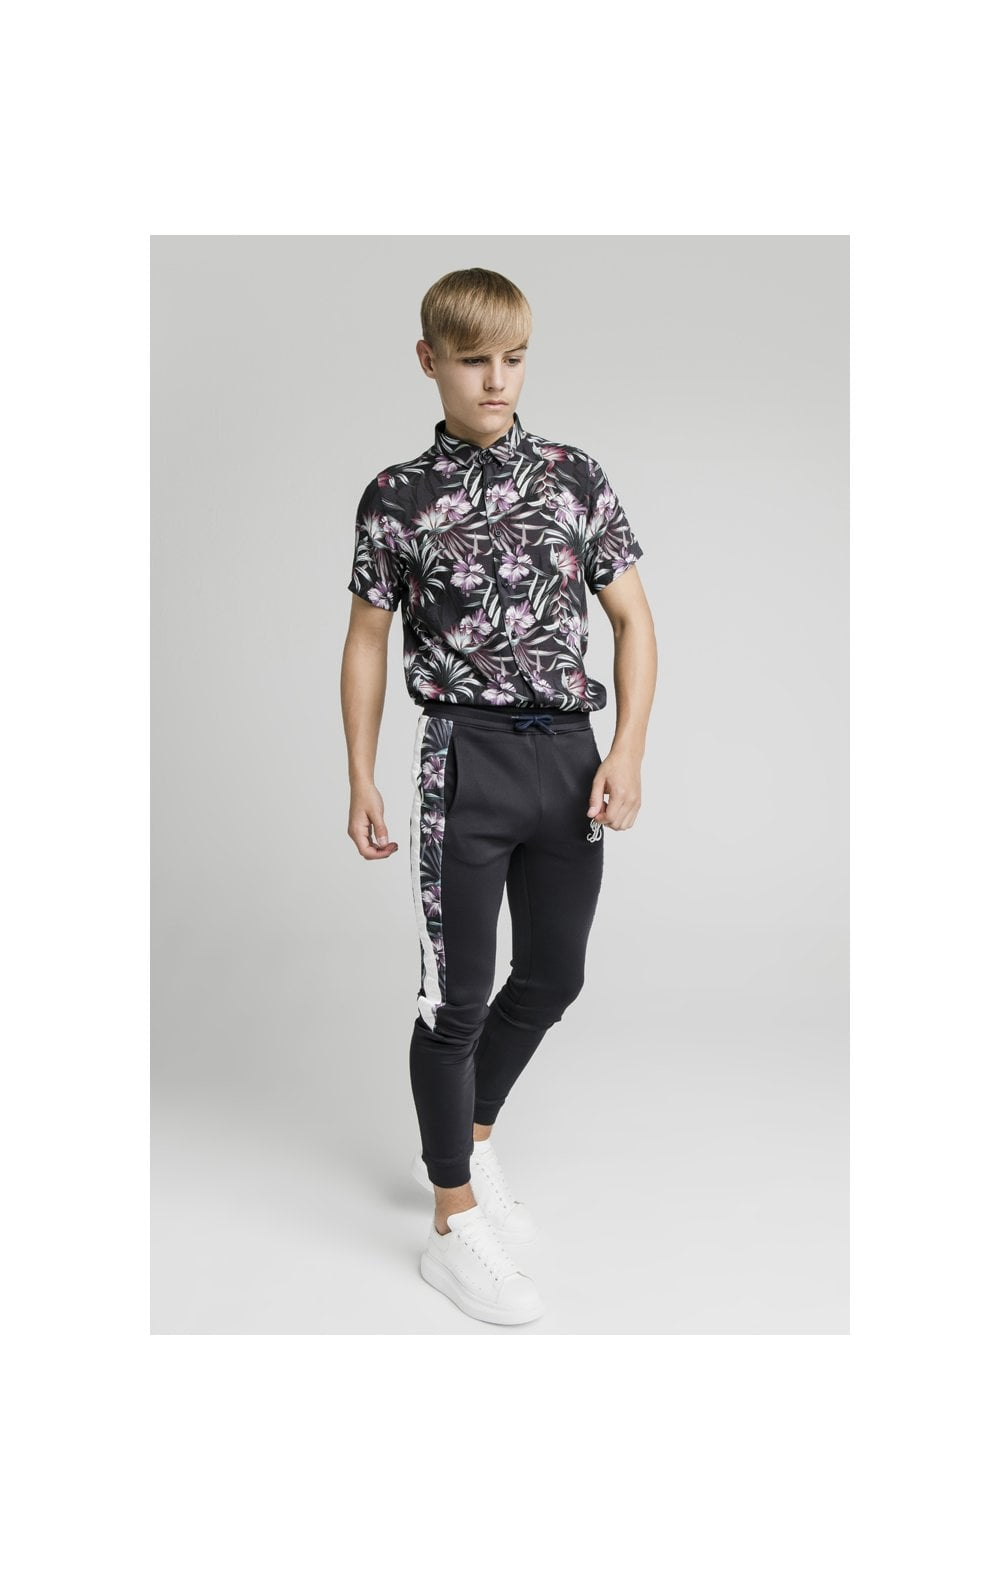 Illusive London Dark Tropical Tape Pants - Navy (2)